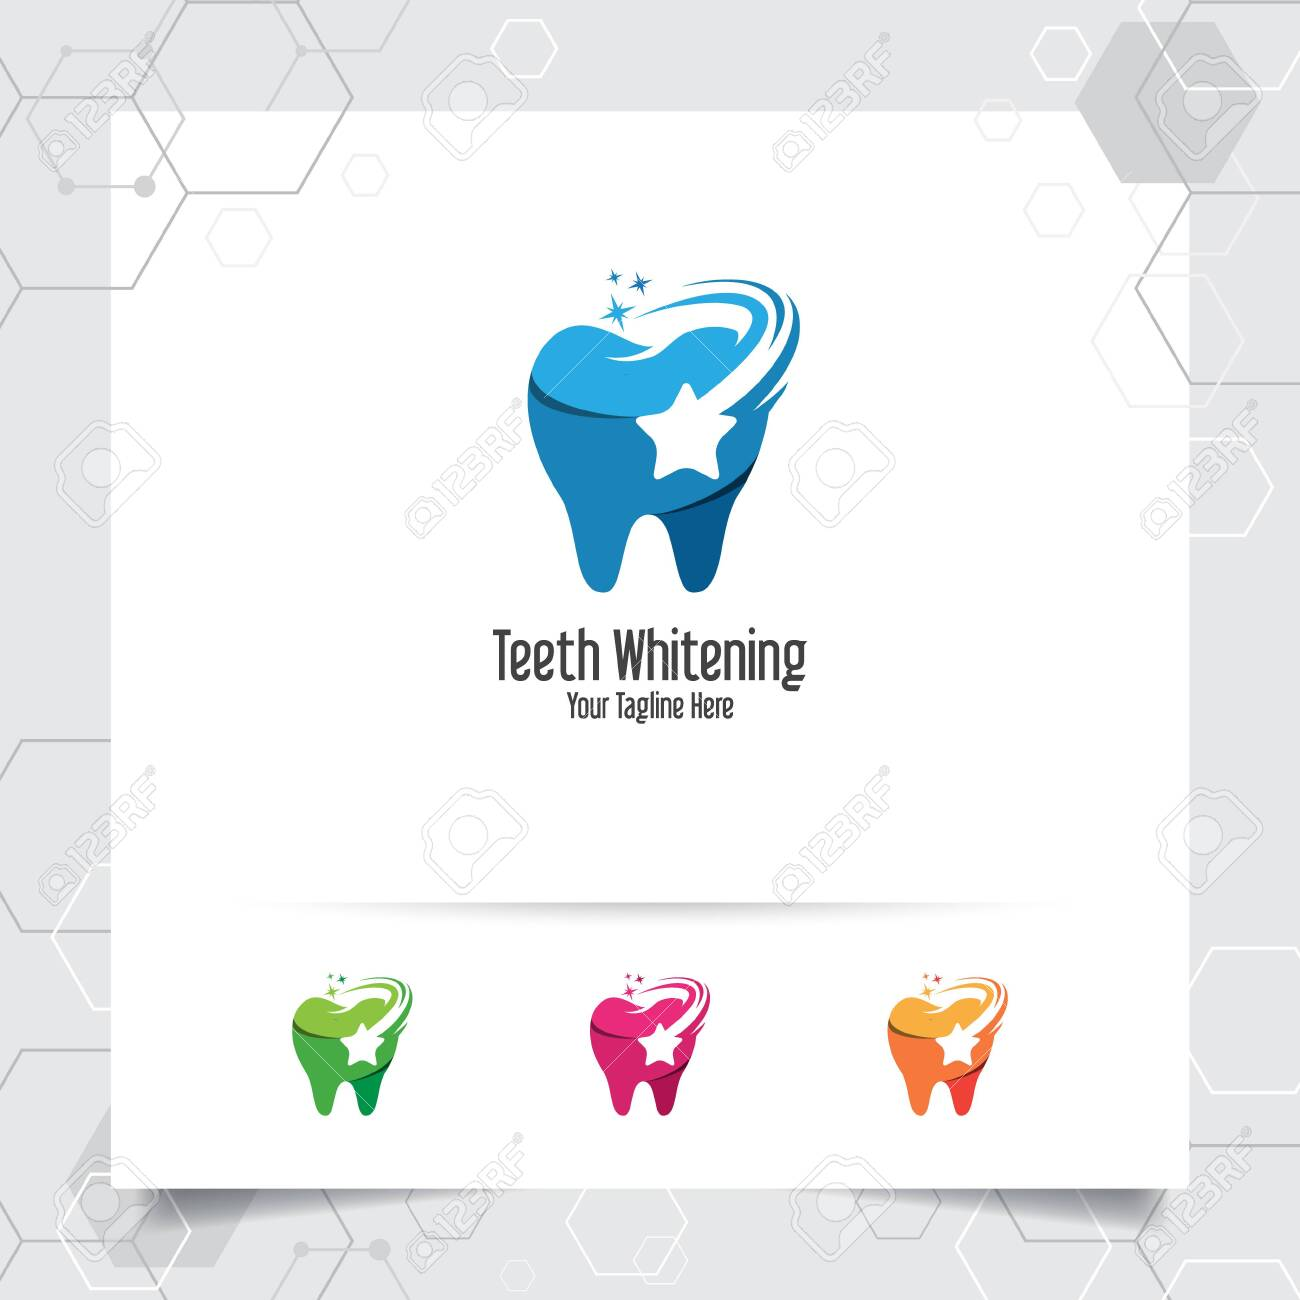 Dental Logo Dentist Vector Design With Concept Of Star Symbol Royalty Free Cliparts Vectors And Stock Illustration Image 121561286